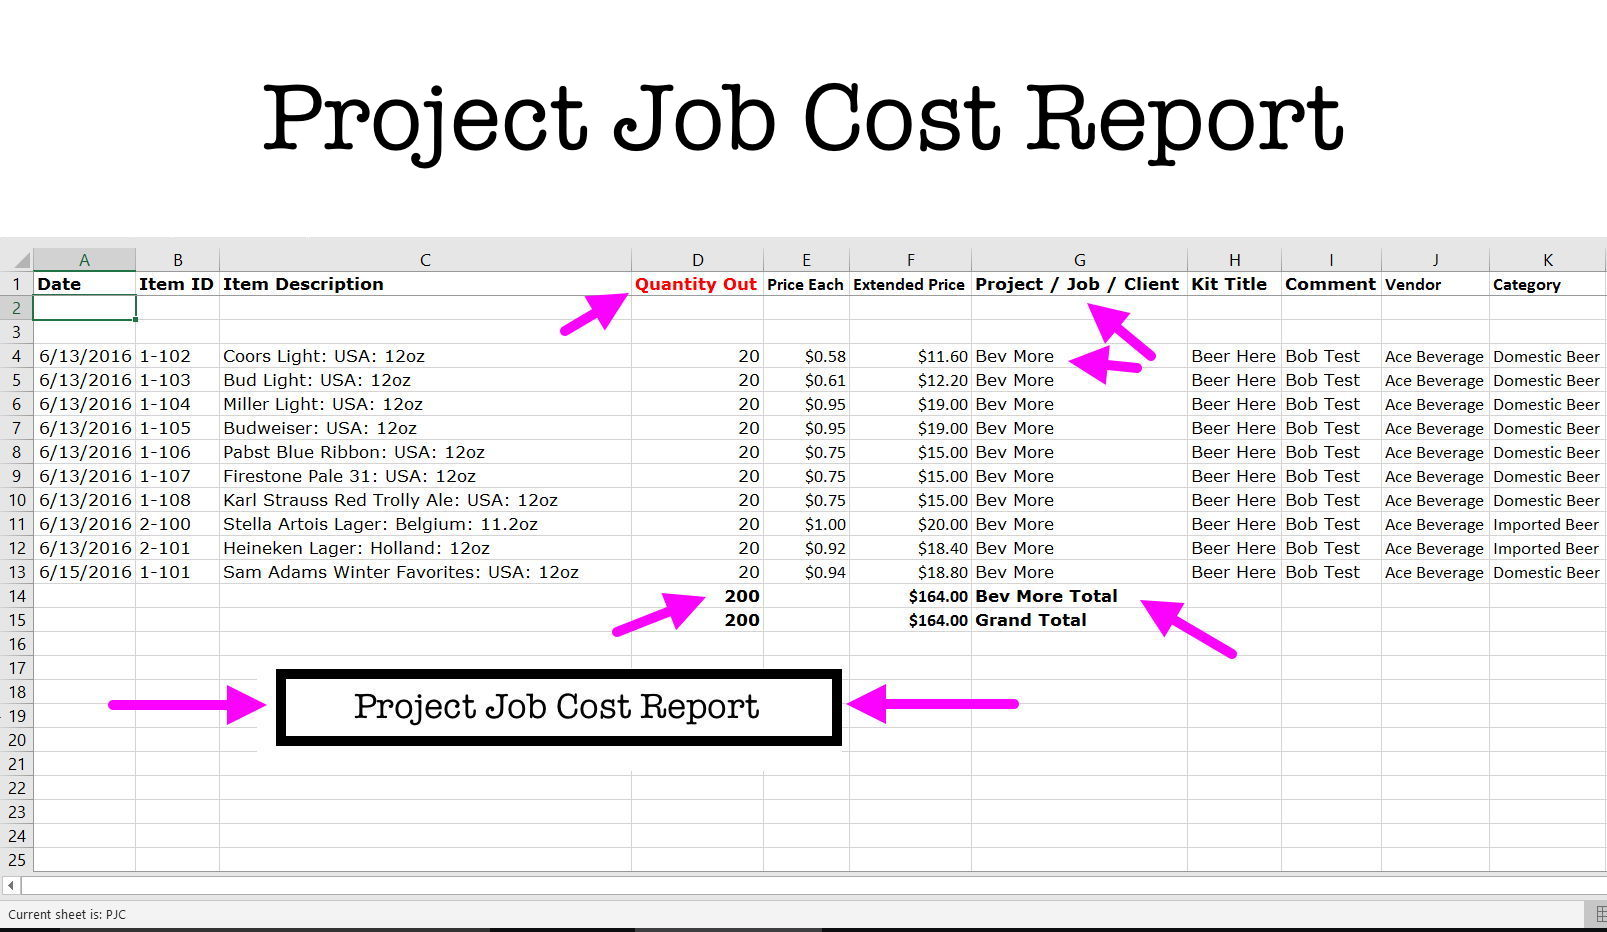 Inventory Control Spreadsheet - Project Job Cost Report